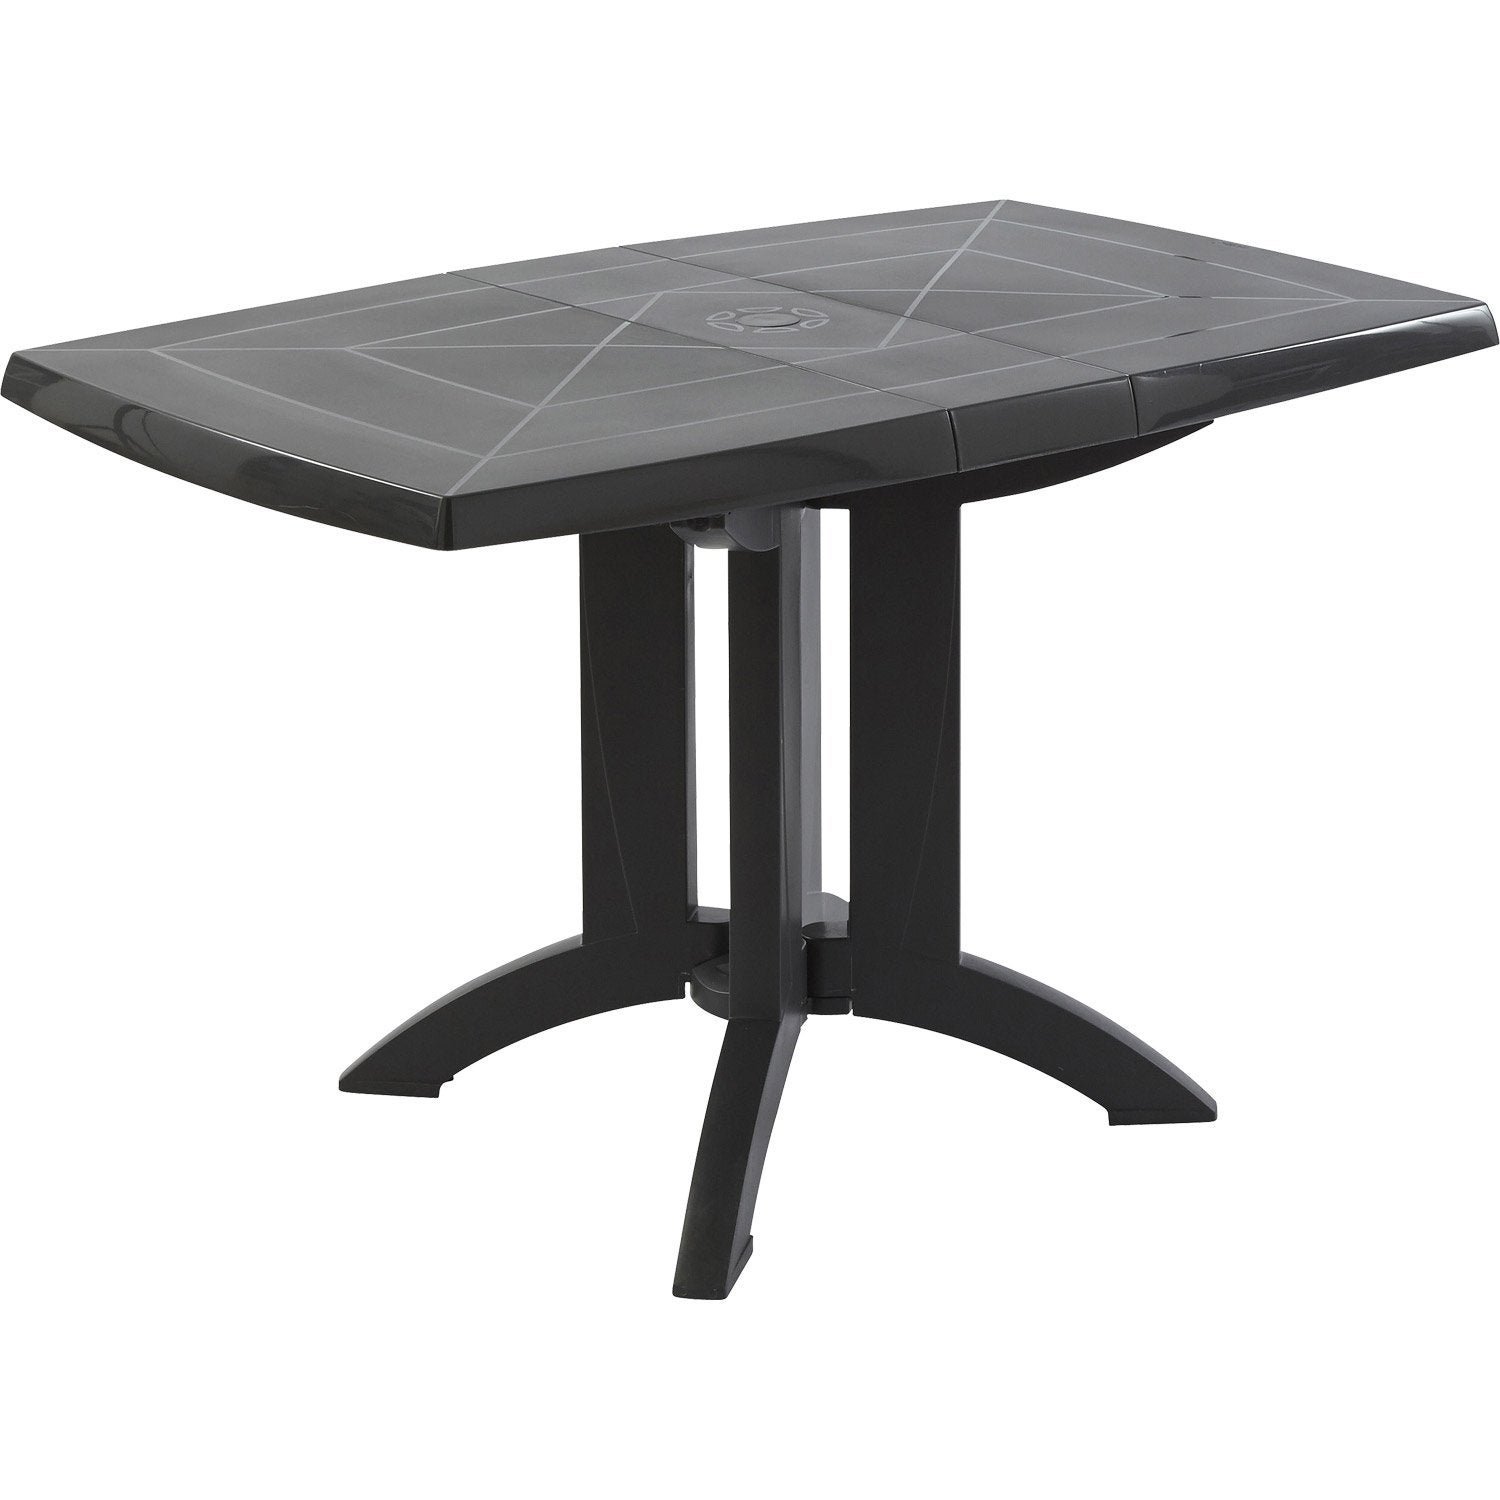 Table de jardin grosfillex v ga rectangulaire anthracite 4 for Table exterieur carrefour